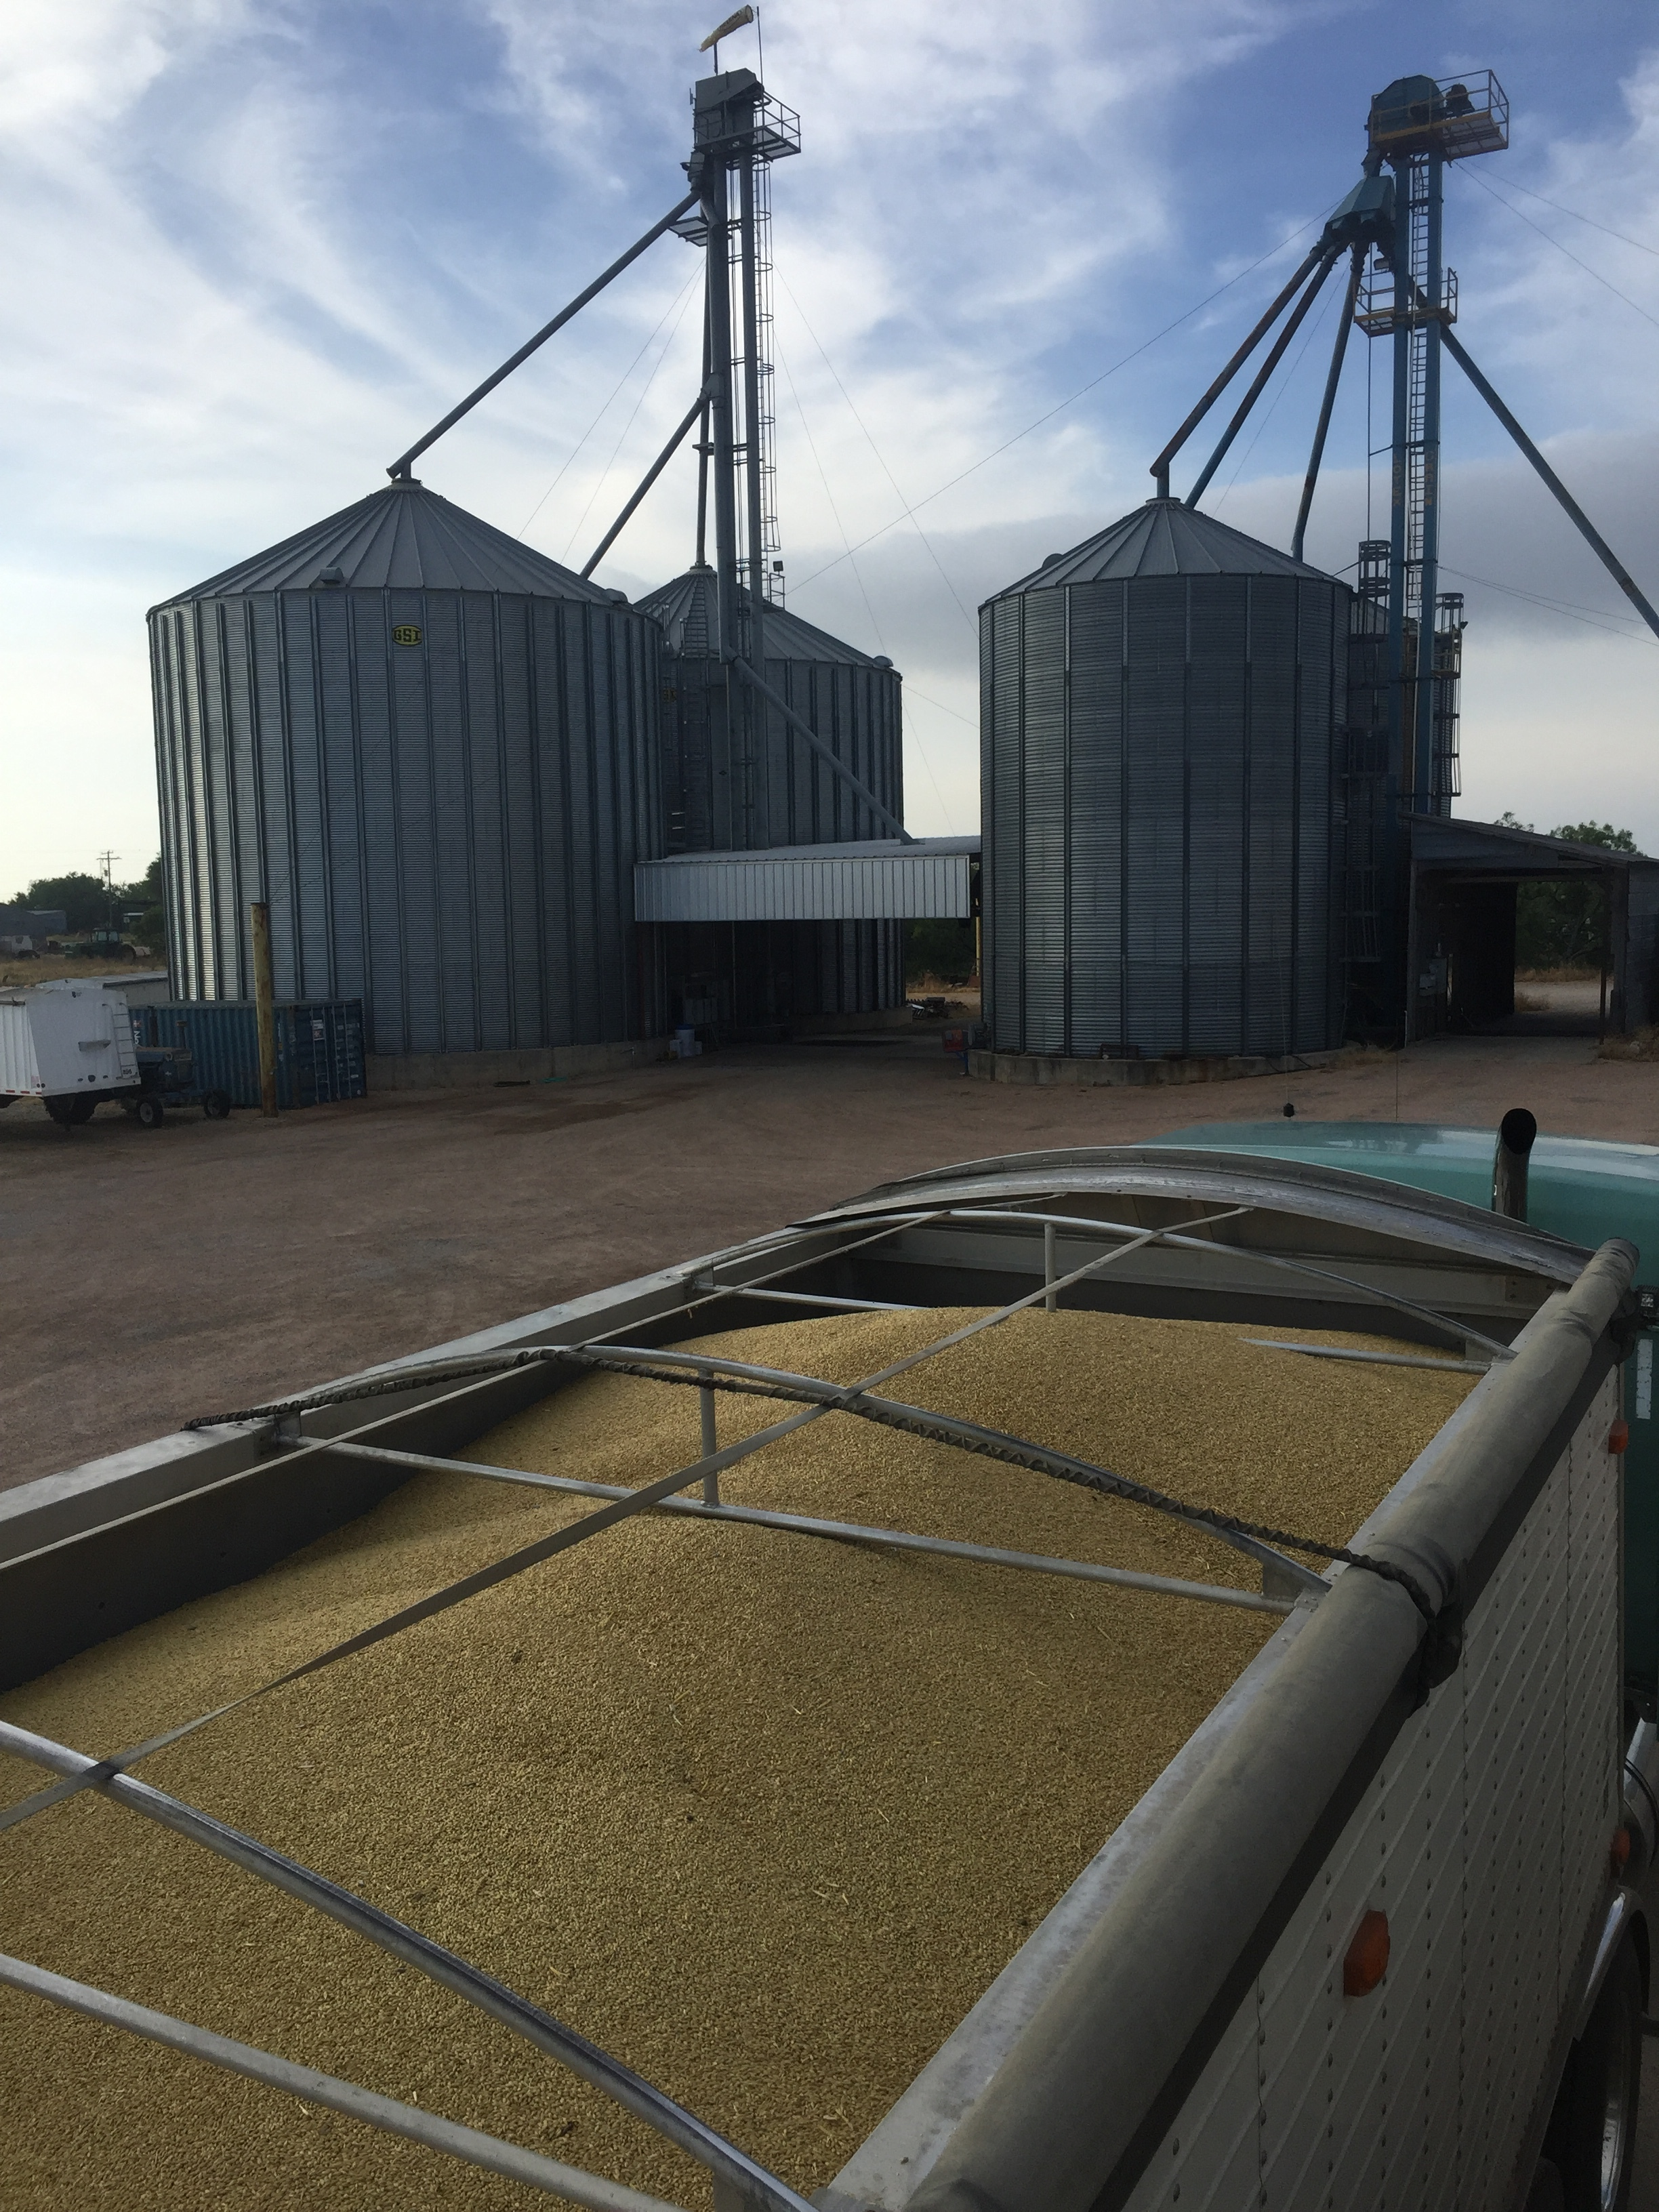 Truckload of Texas grown 2 row malting barley at the storage elevator in North Central Texas.